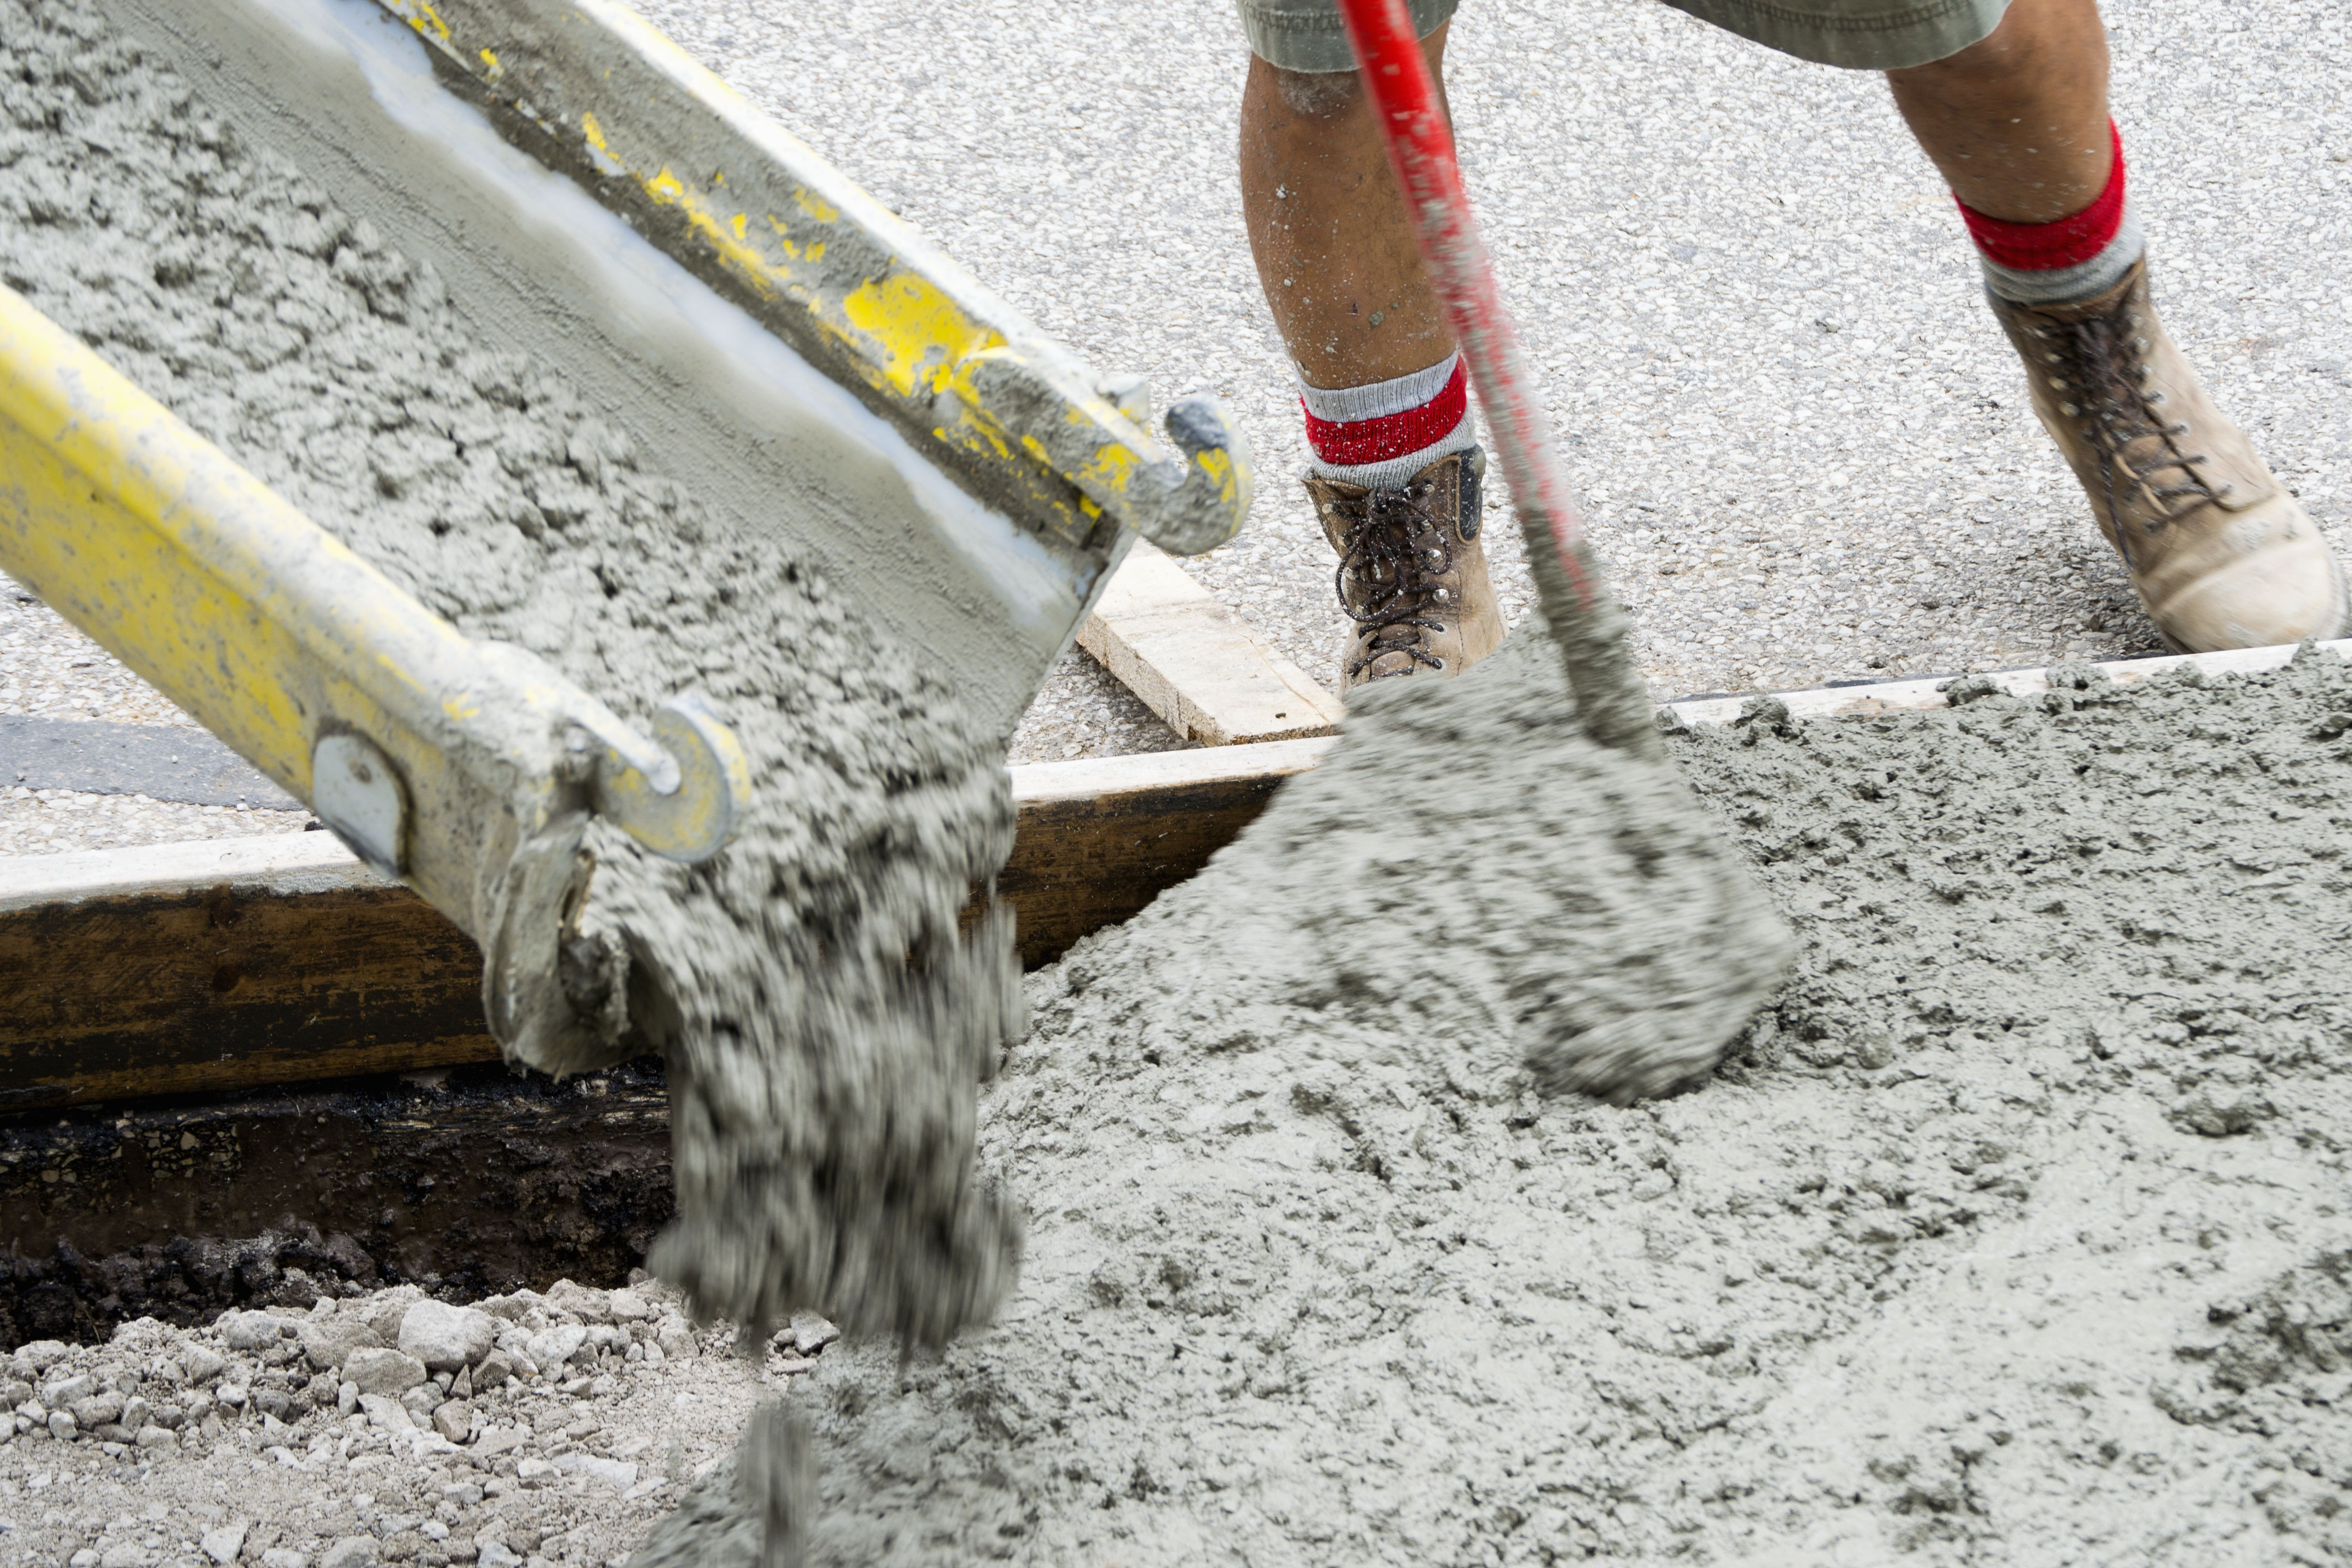 How To Pour Concrete In Hot Weather